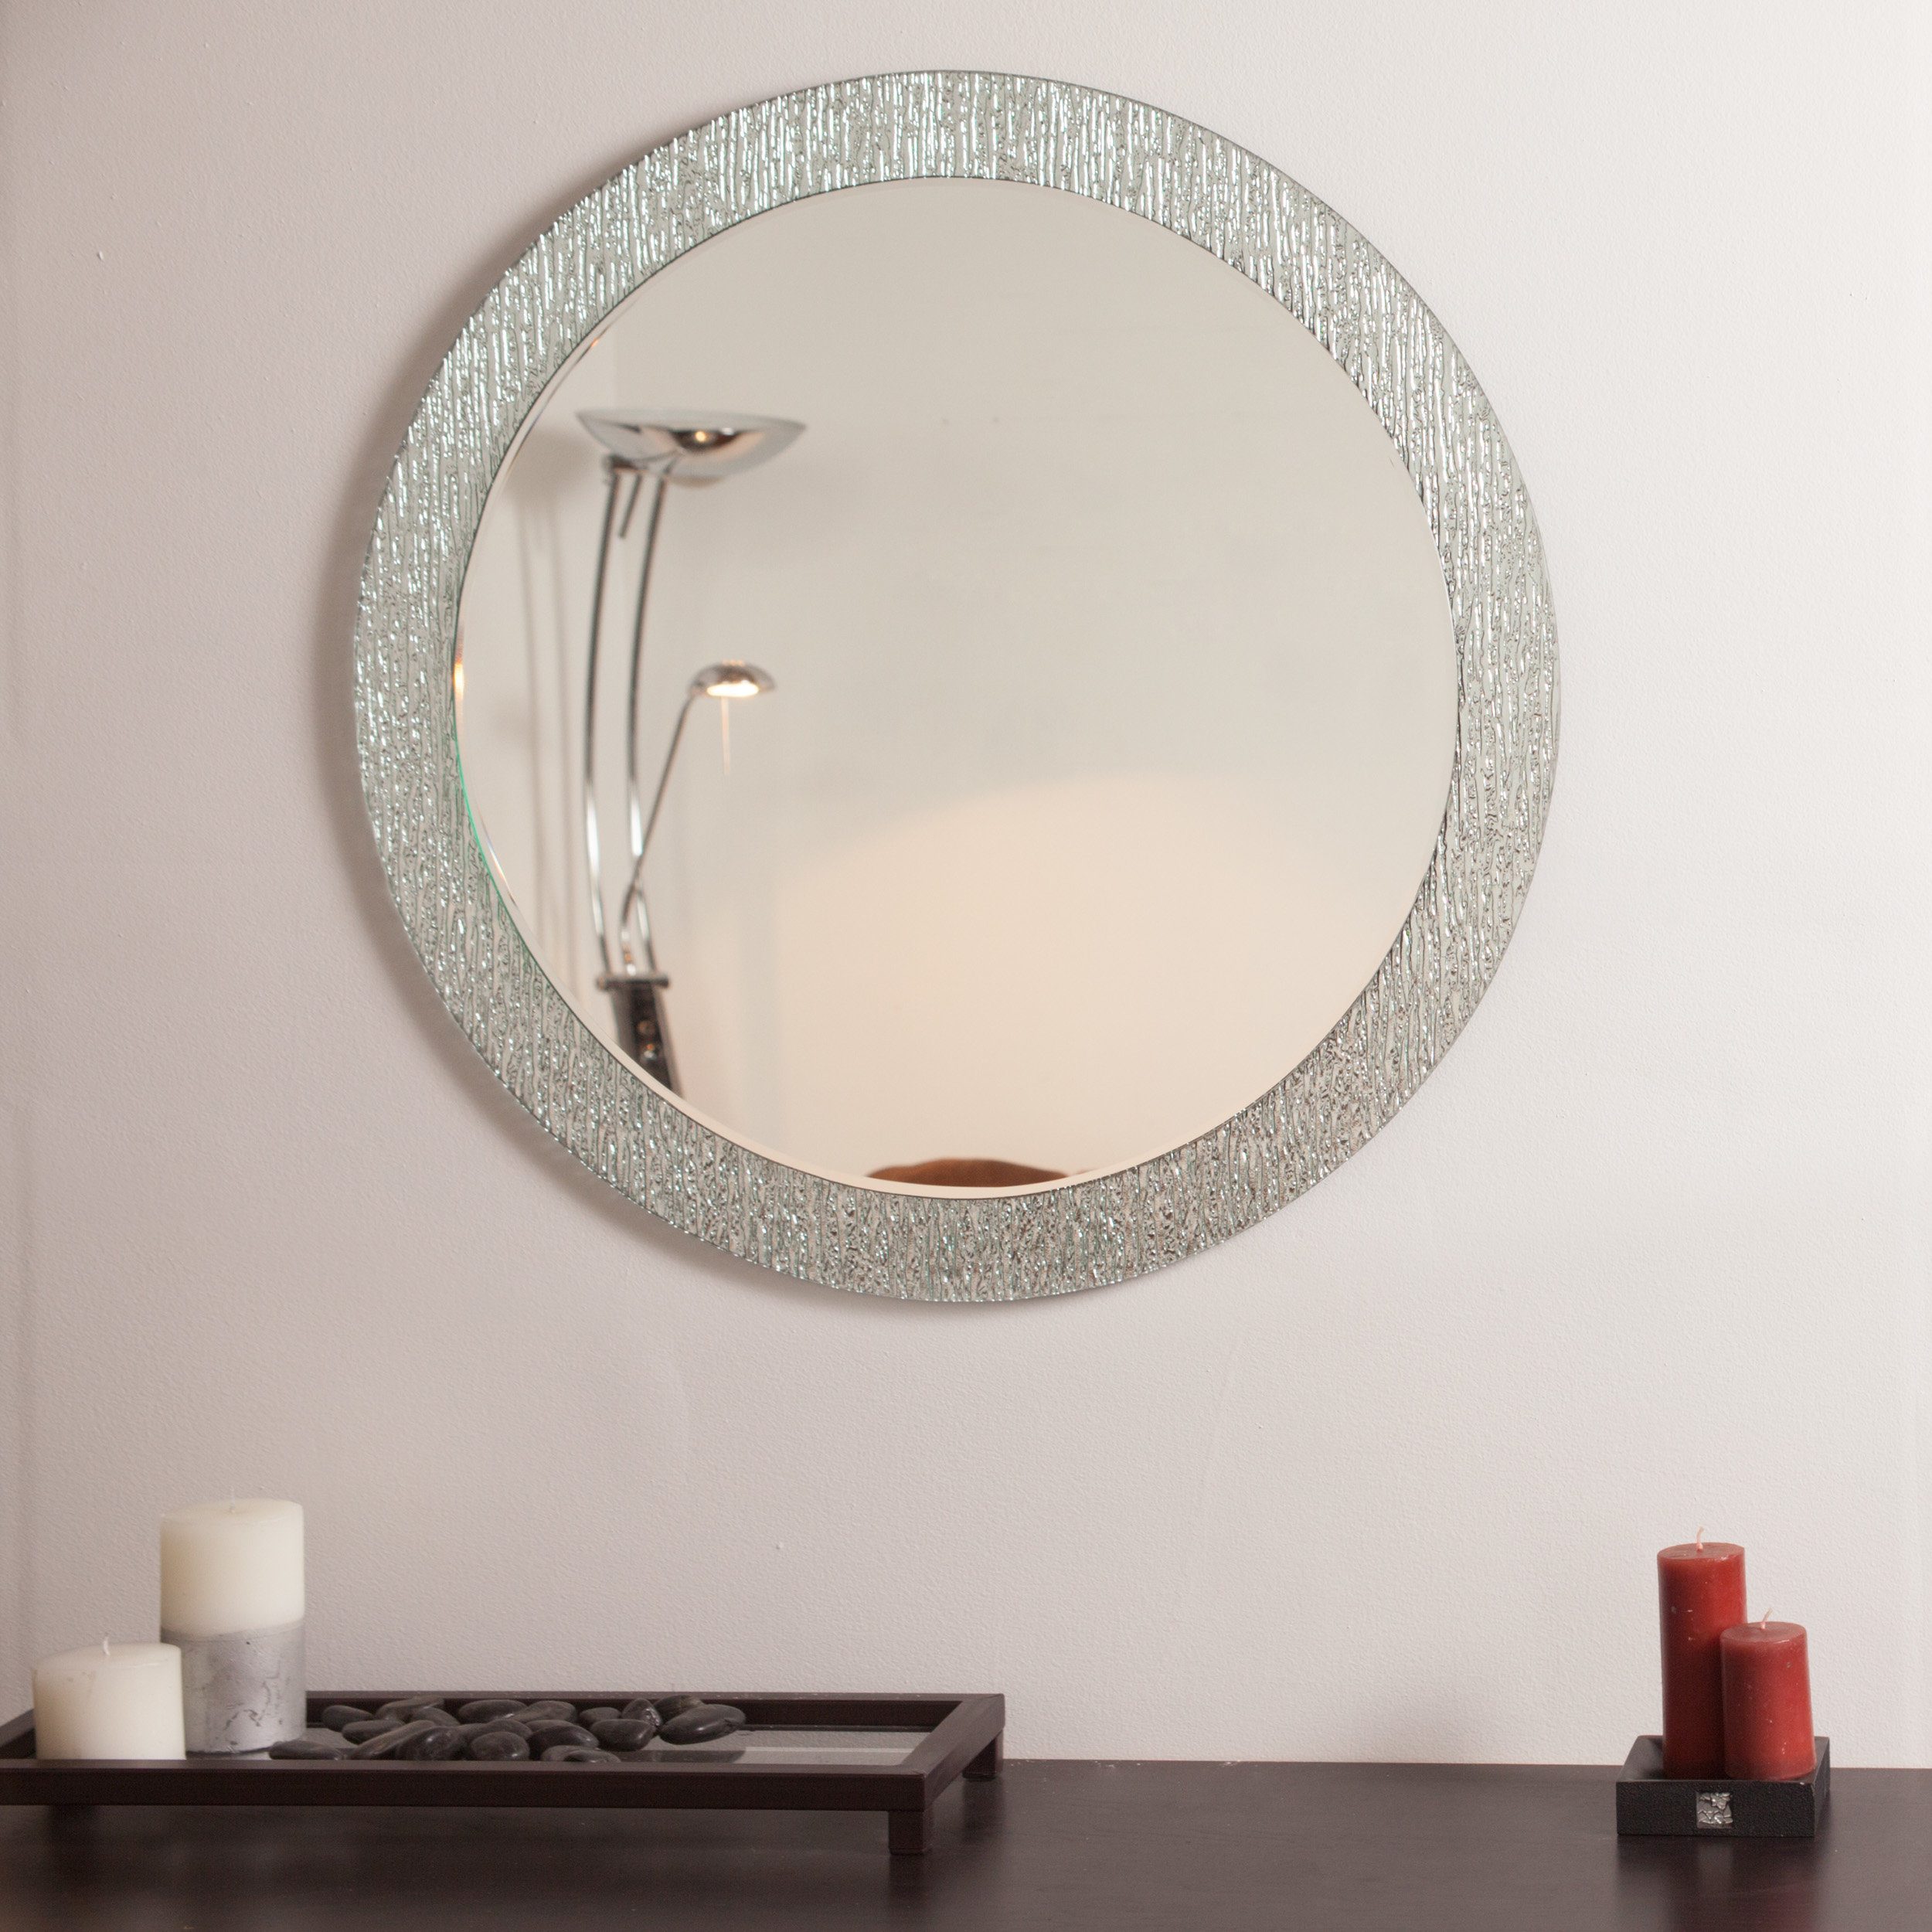 Point Reyes Molten Round Wall Mirror & Reviews | Joss & Main Inside Sajish Oval Crystal Wall Mirrors (View 16 of 30)